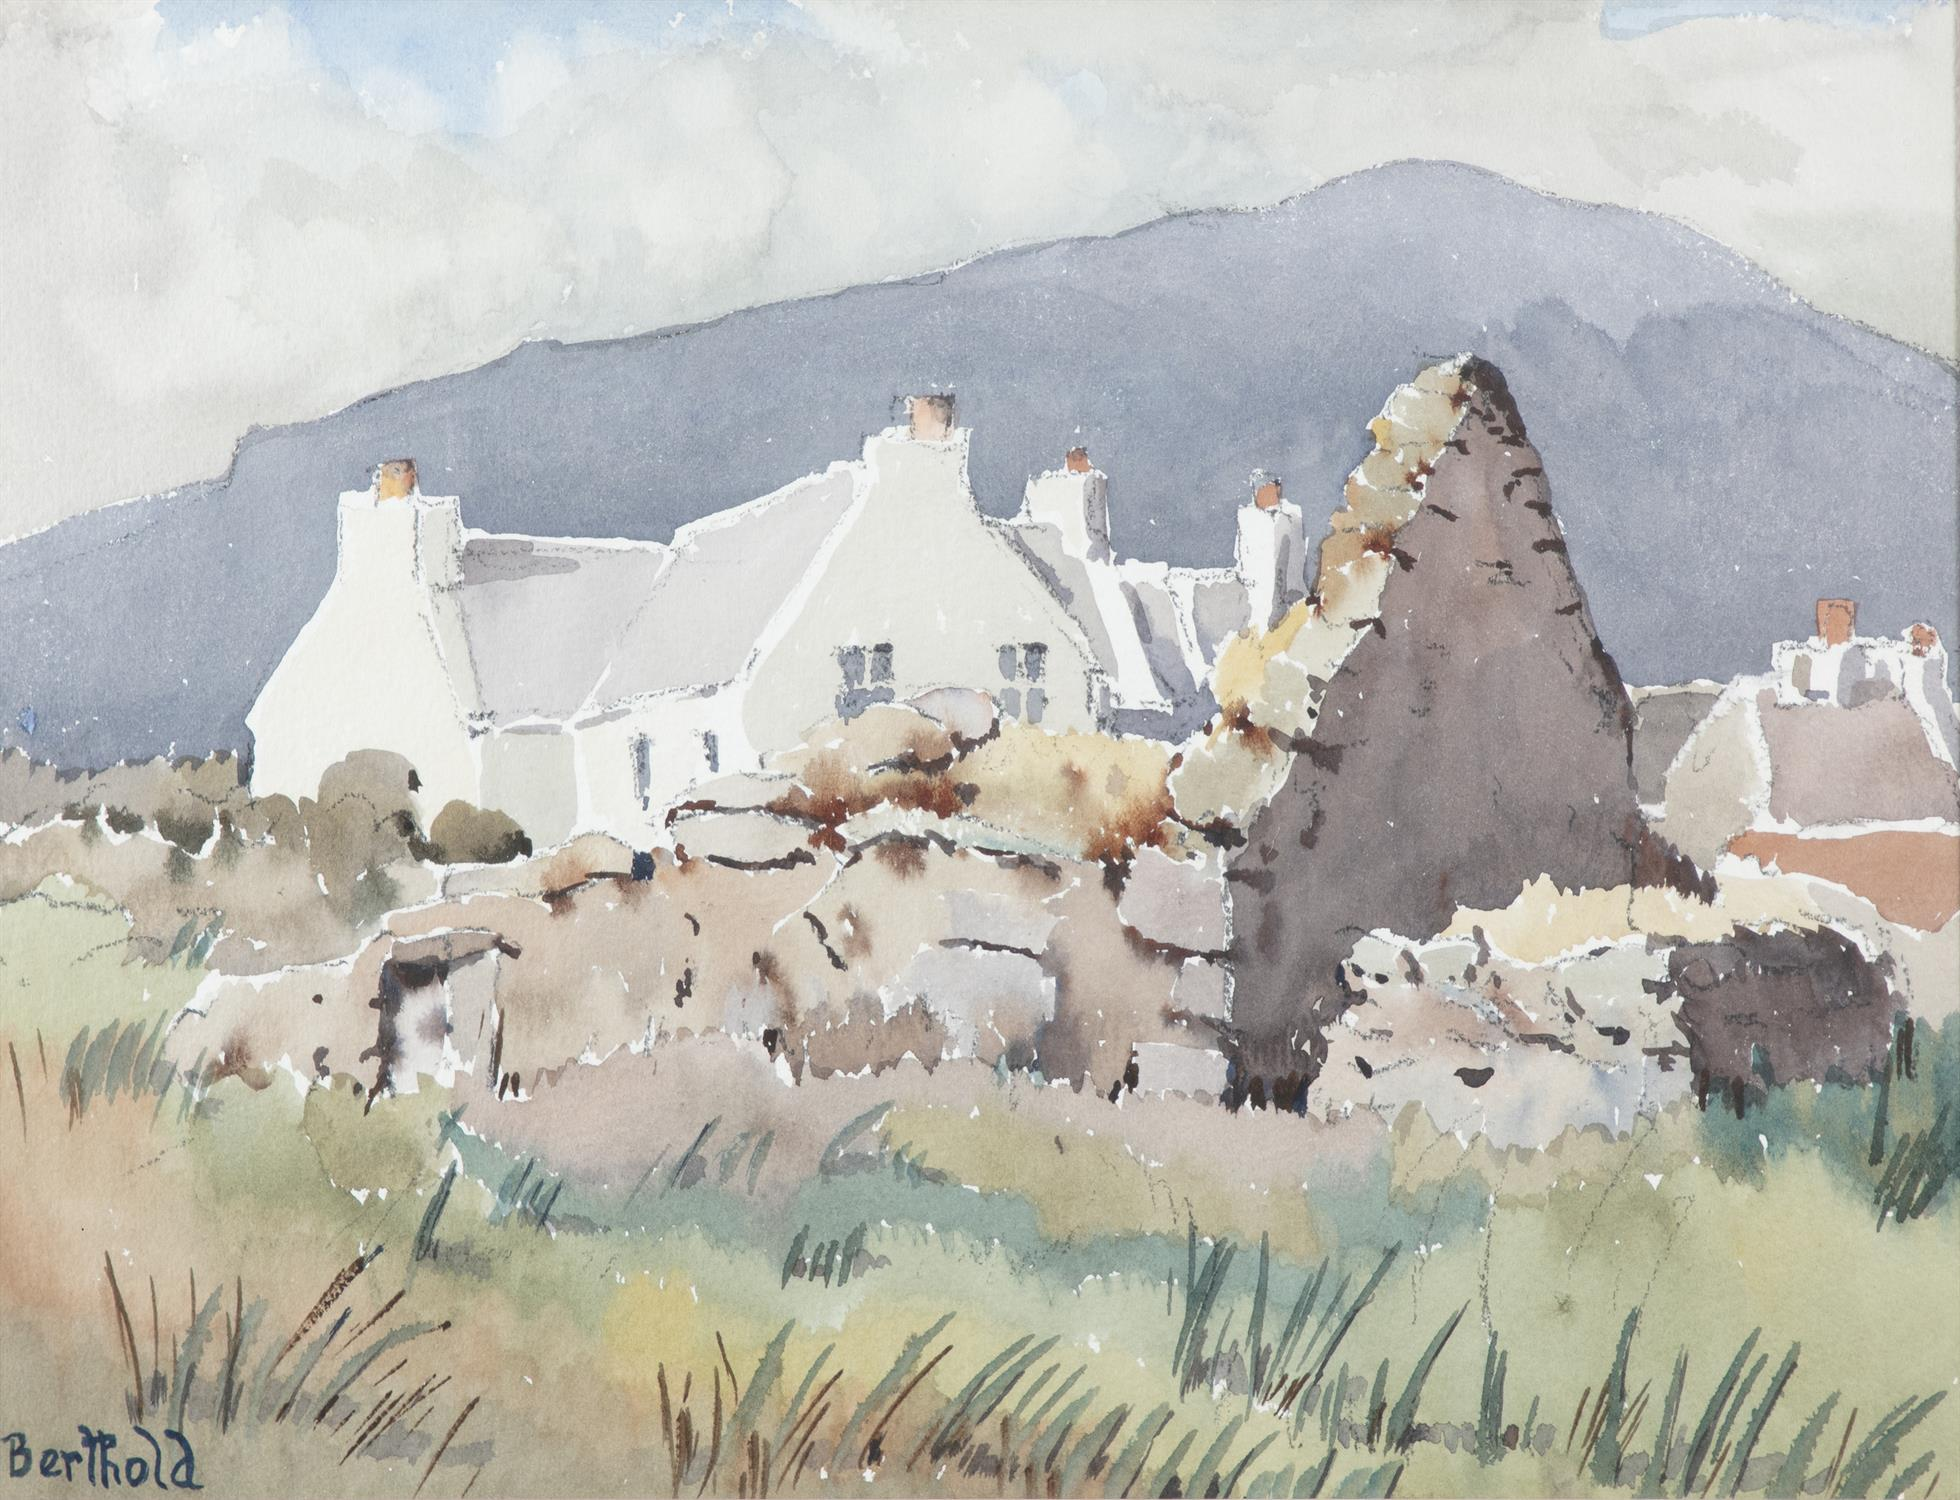 """BERTHOLD DUNNE Old Ruin, Keel, Achill Watercolour, 29 x 38.5cm (11.5 x 15"""") Signed; title - Image 2 of 4"""